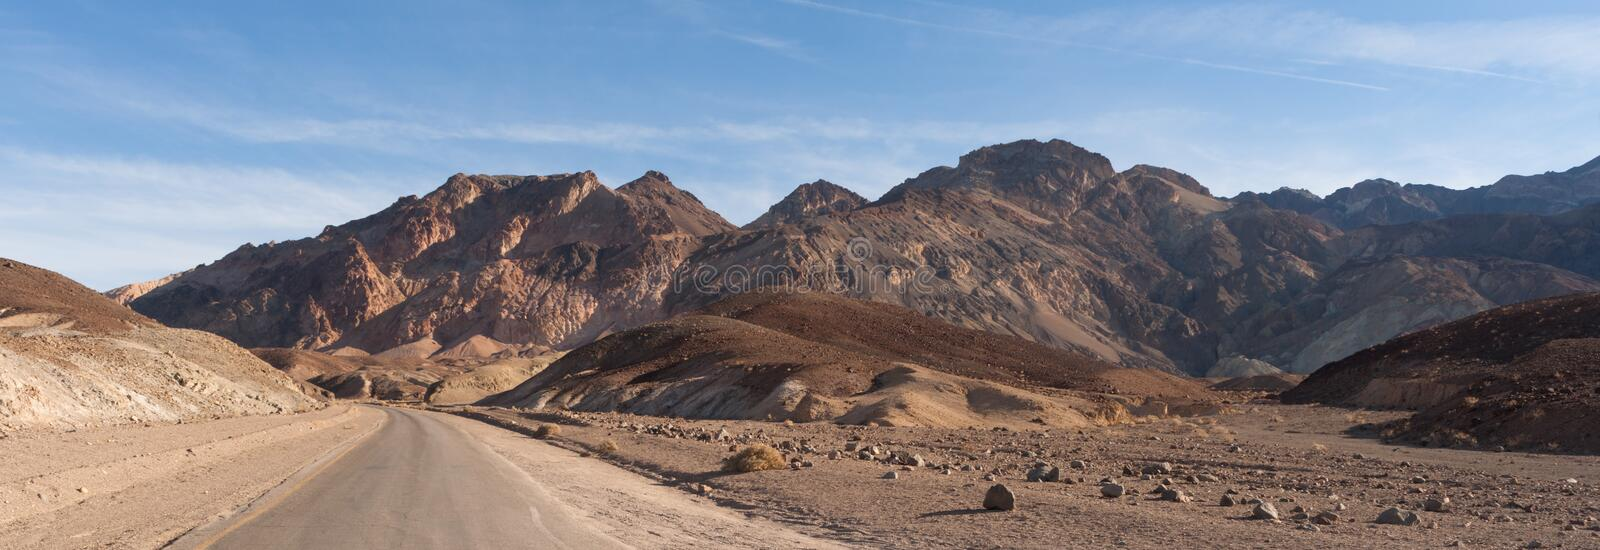 Panoramic View Open Road Death Valley National Park Highway stock photography